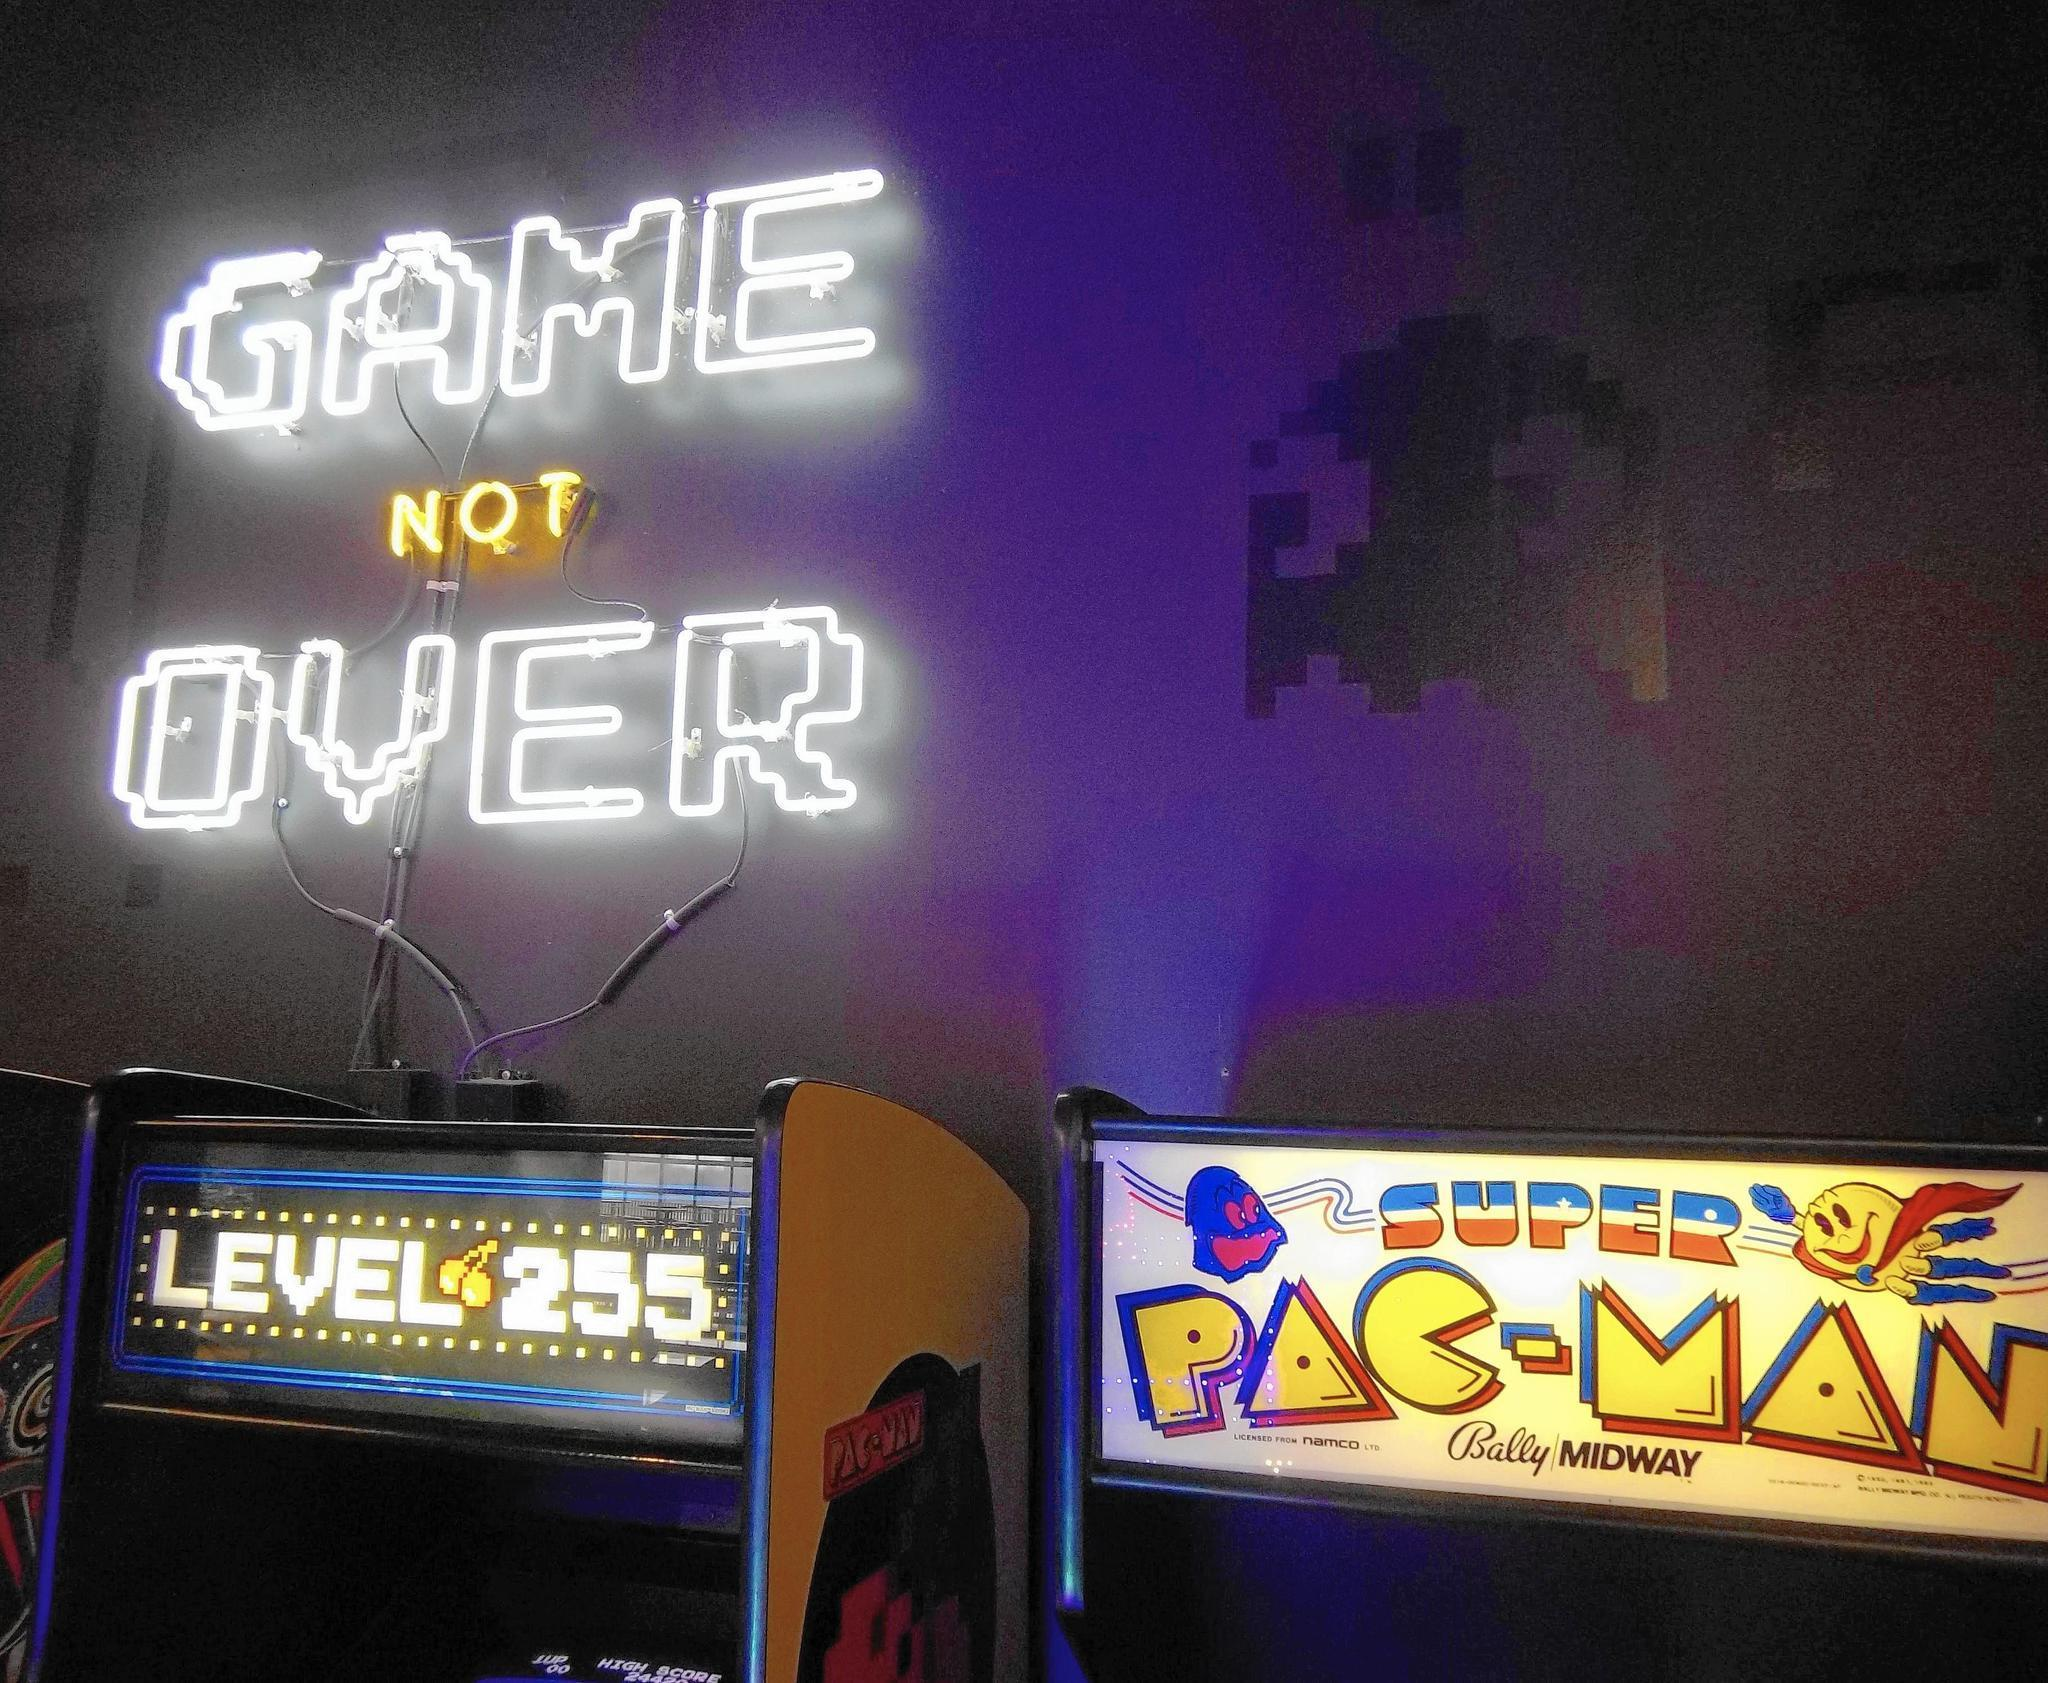 No quarters necessary: Old-school pinball and video game arcades in the suburbs